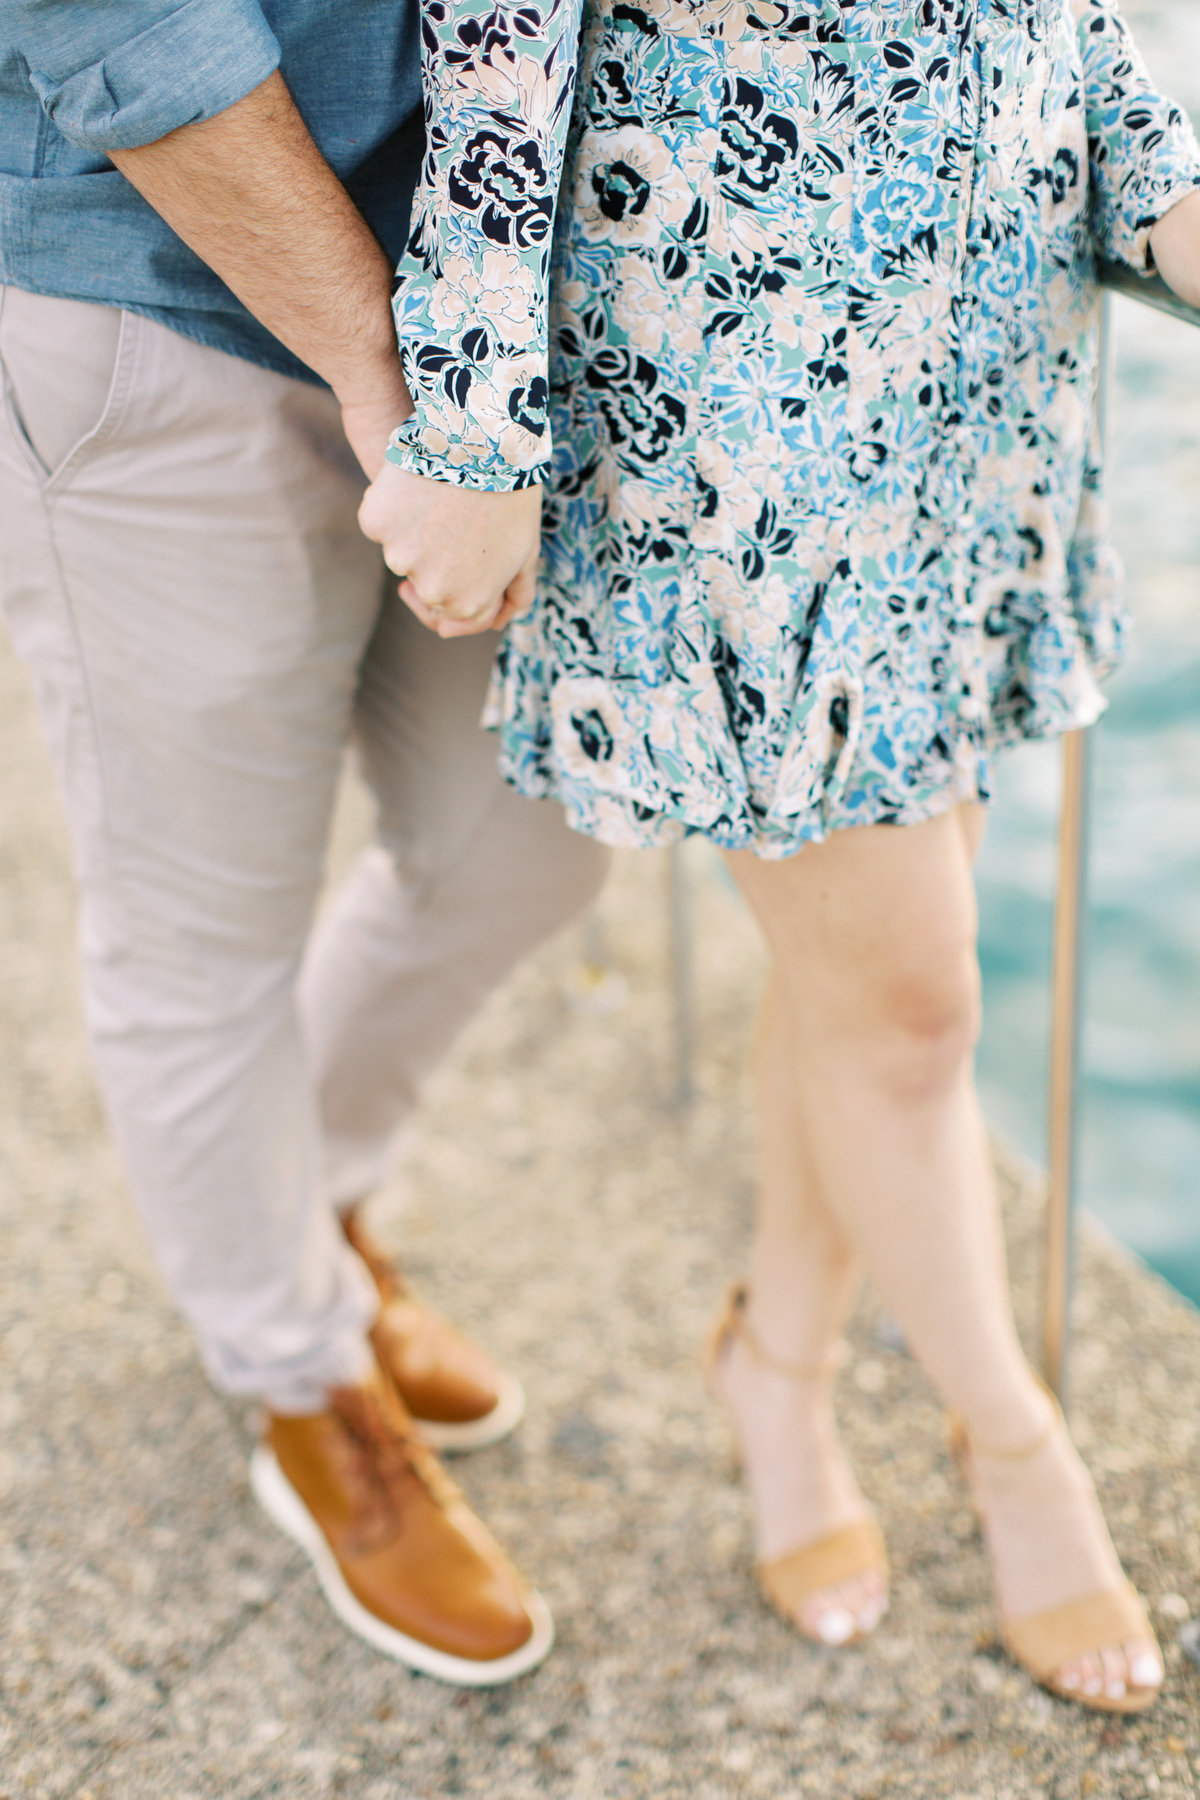 AllieDavid_Engagement_September042019_22